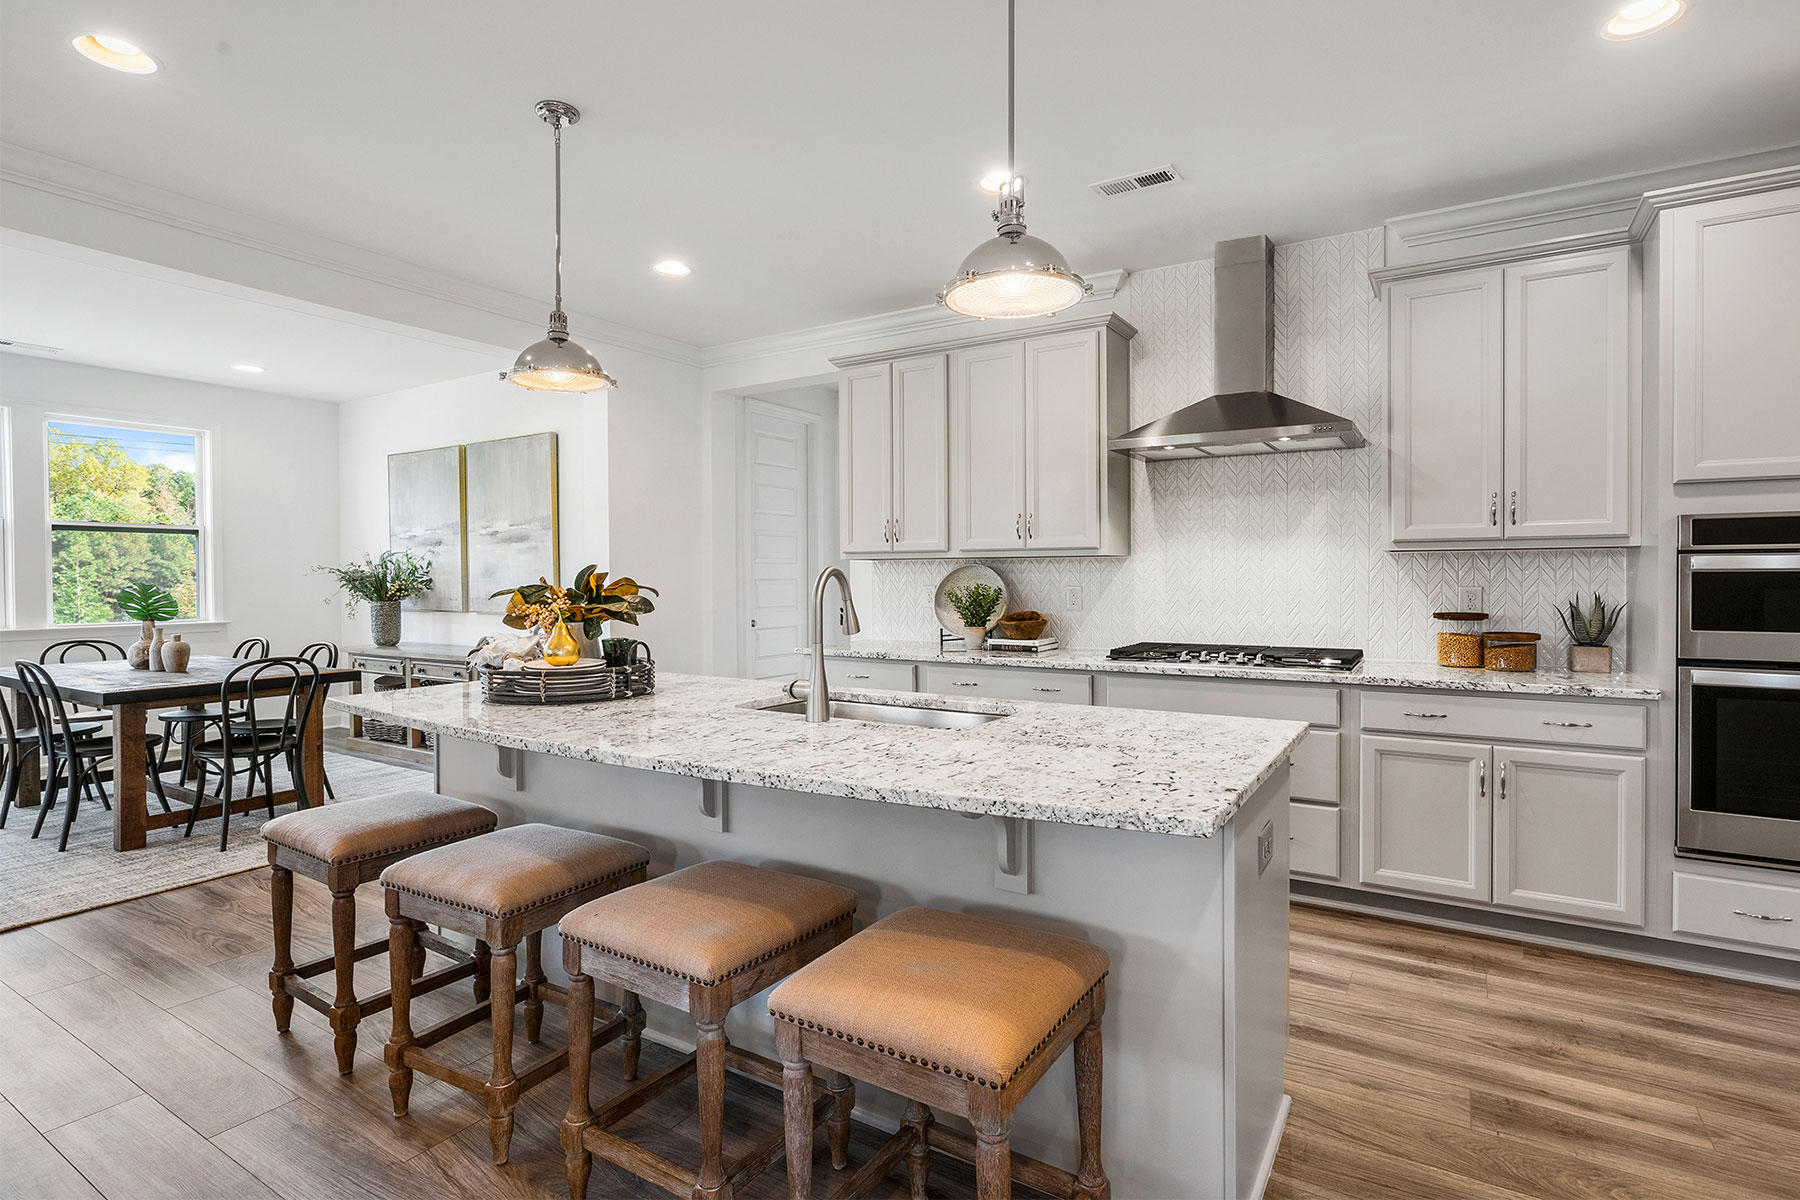 Abbott Plan Kitchen at Fairview Park in Cary North Carolina by Mattamy Homes